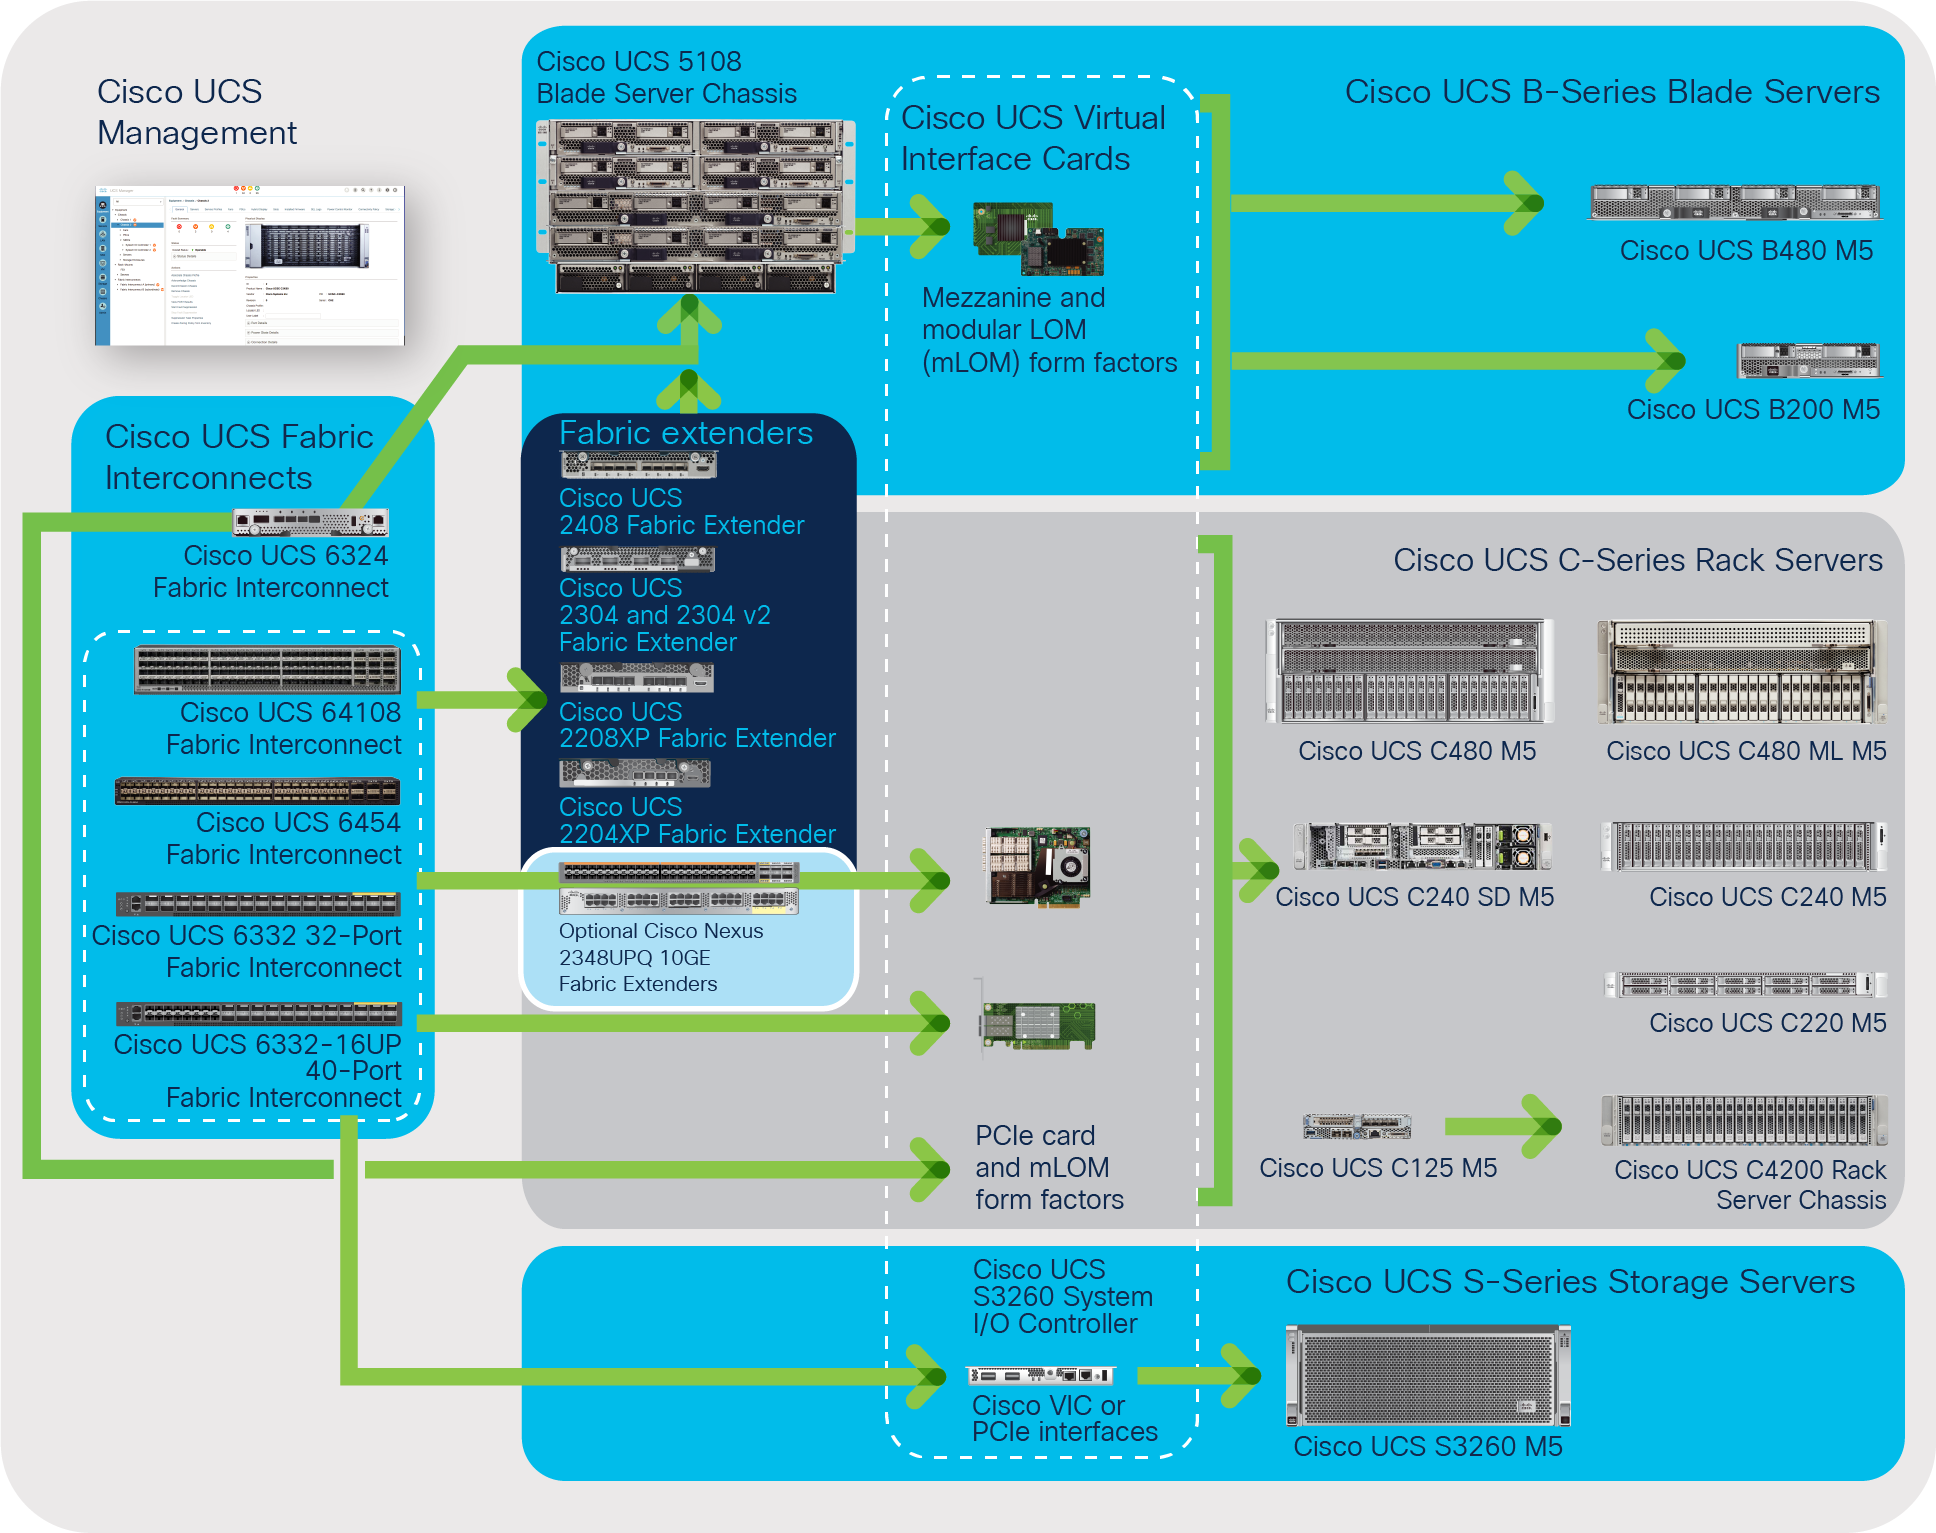 The Cisco Unified Computing System is a highly available cohesive architecture